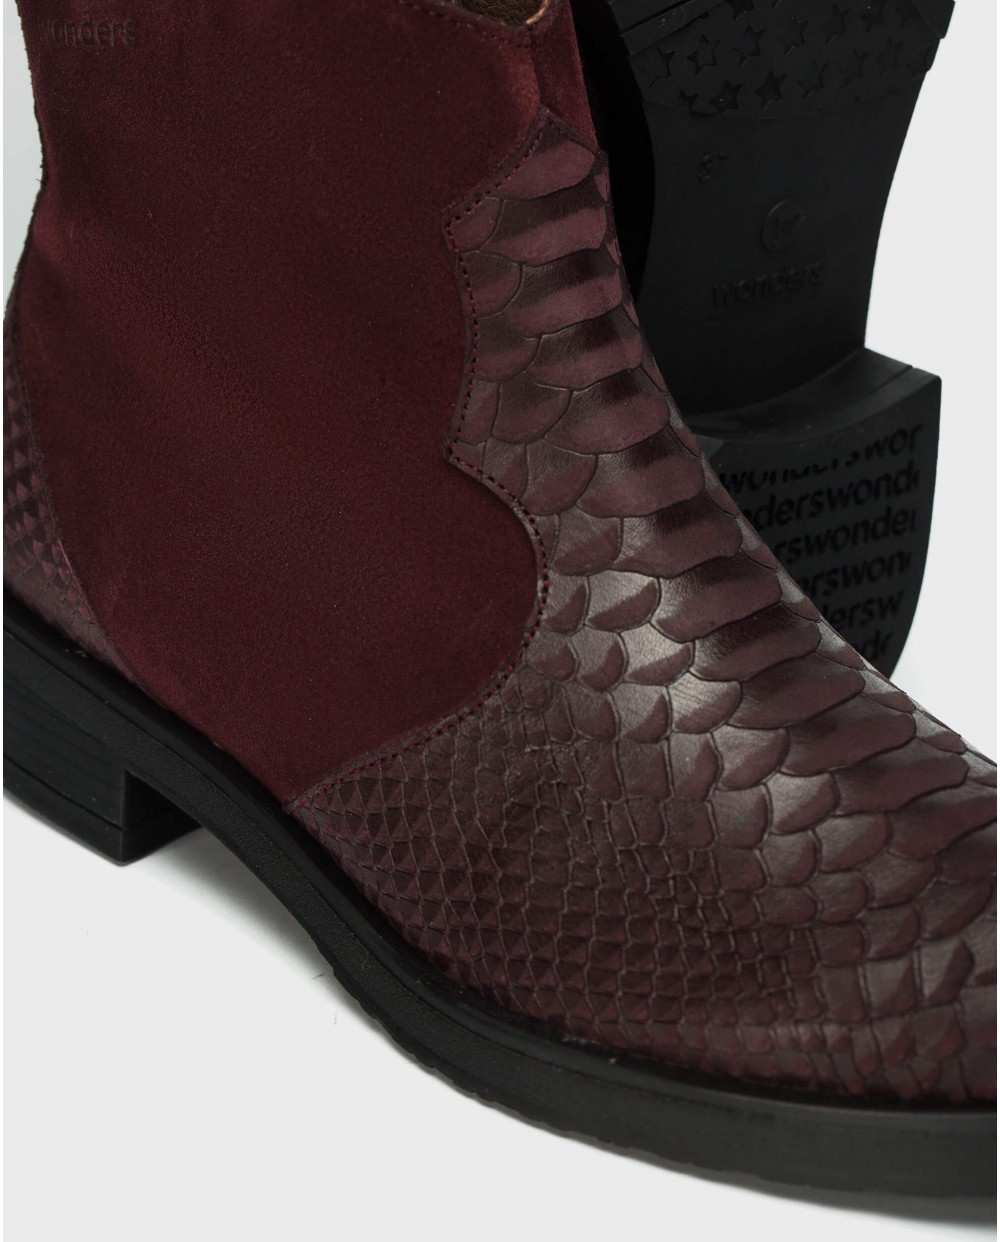 Wonders-Outlet-V cut leather ankle boot